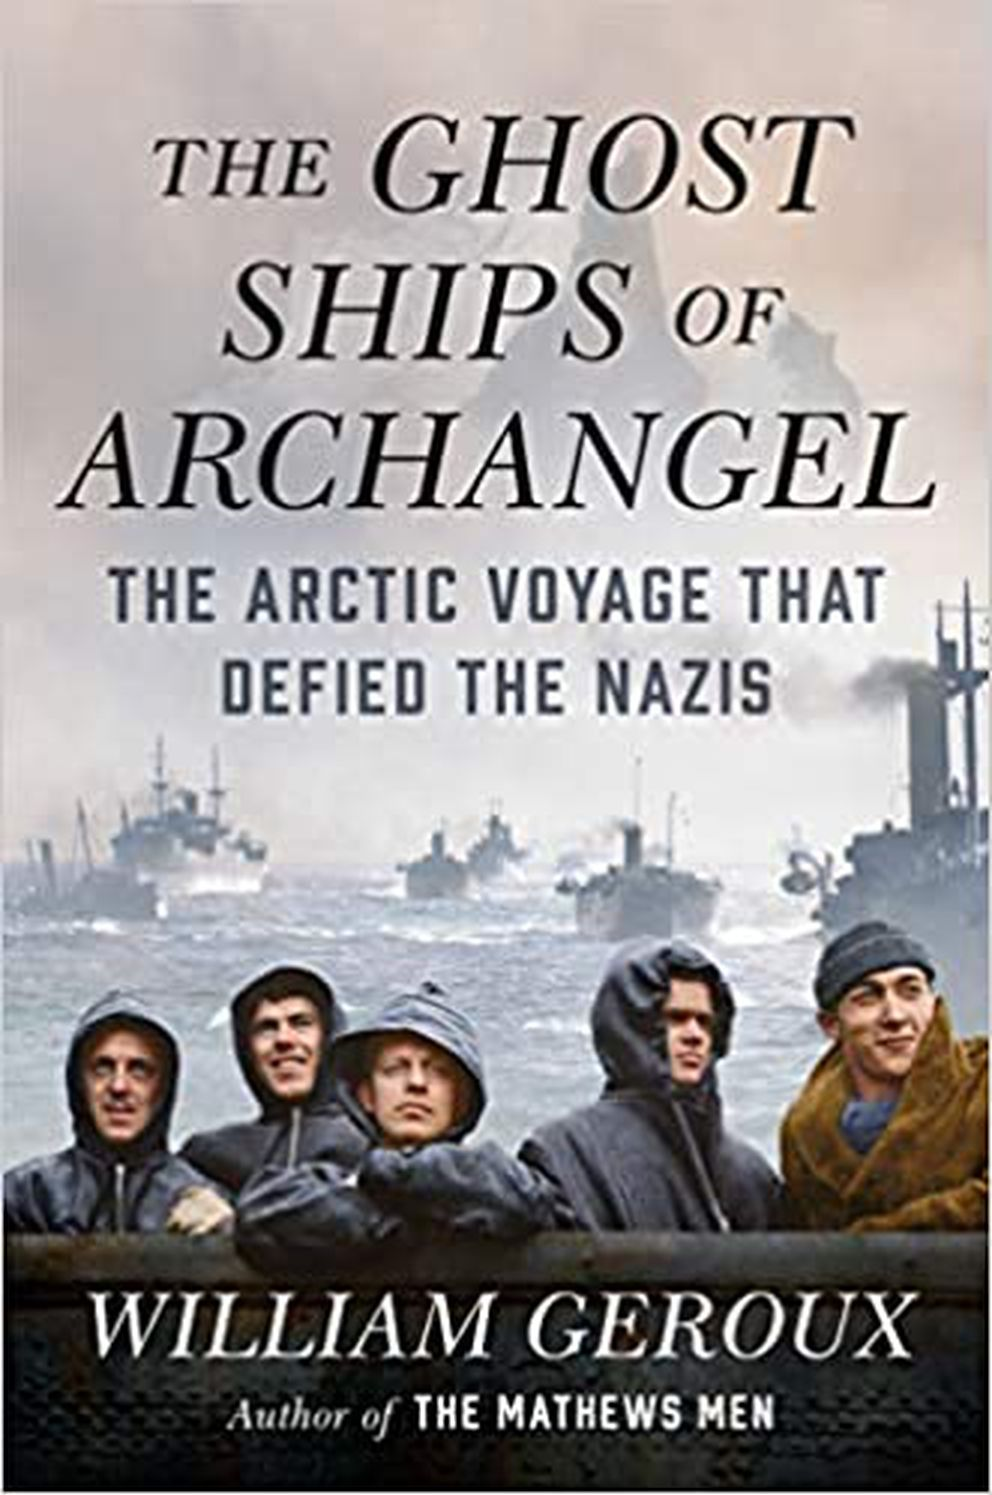 'The Ghost Ships of Archangel, ' by William Geroux